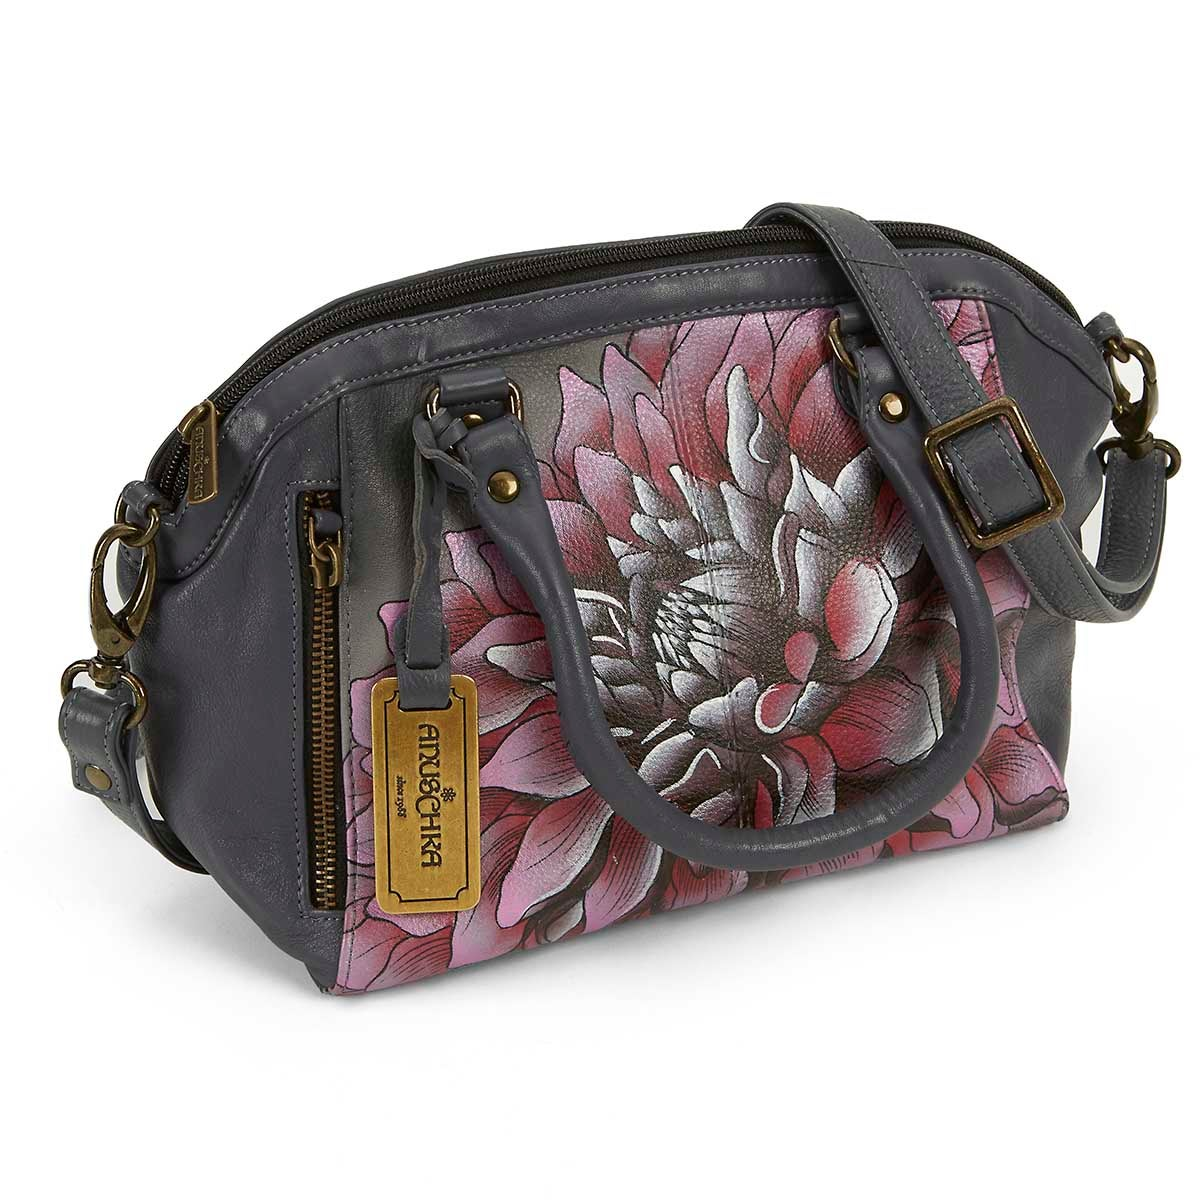 Women's DREAMY DAHLIAS pink convertible tote